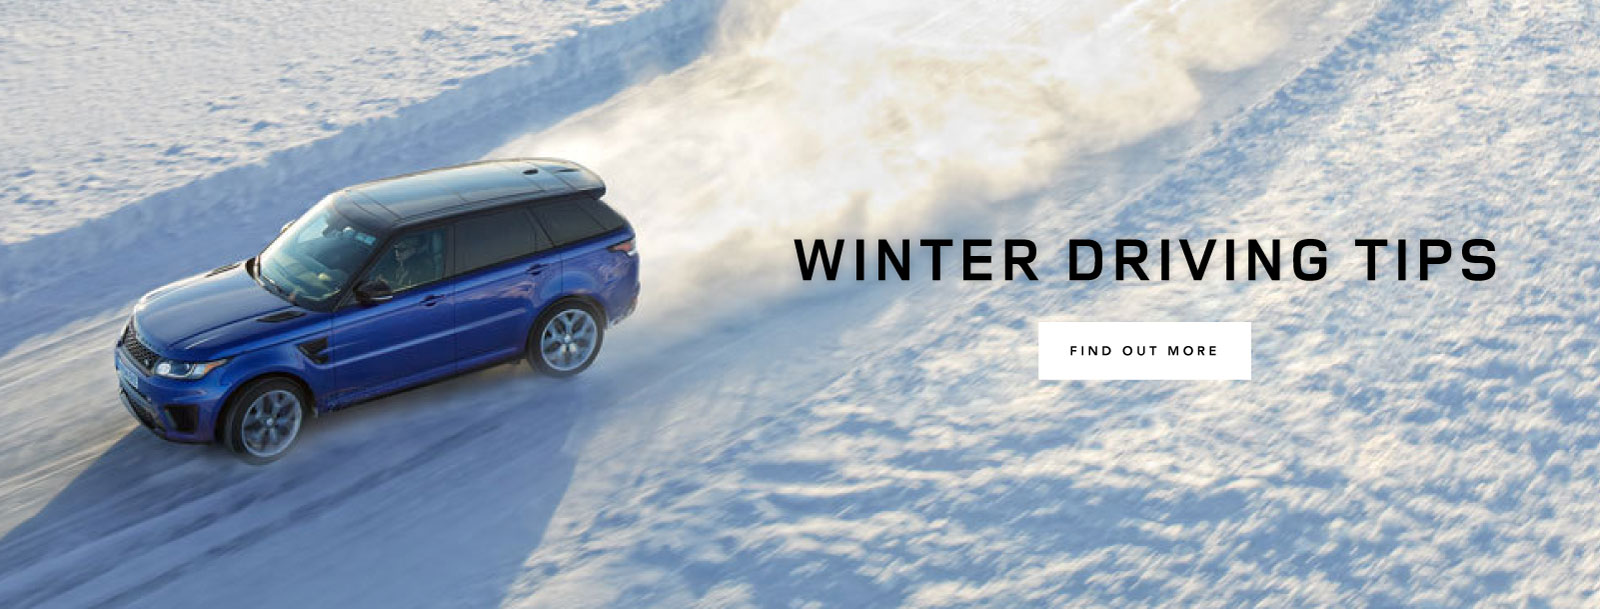 Land Rover Winter Driving Tips